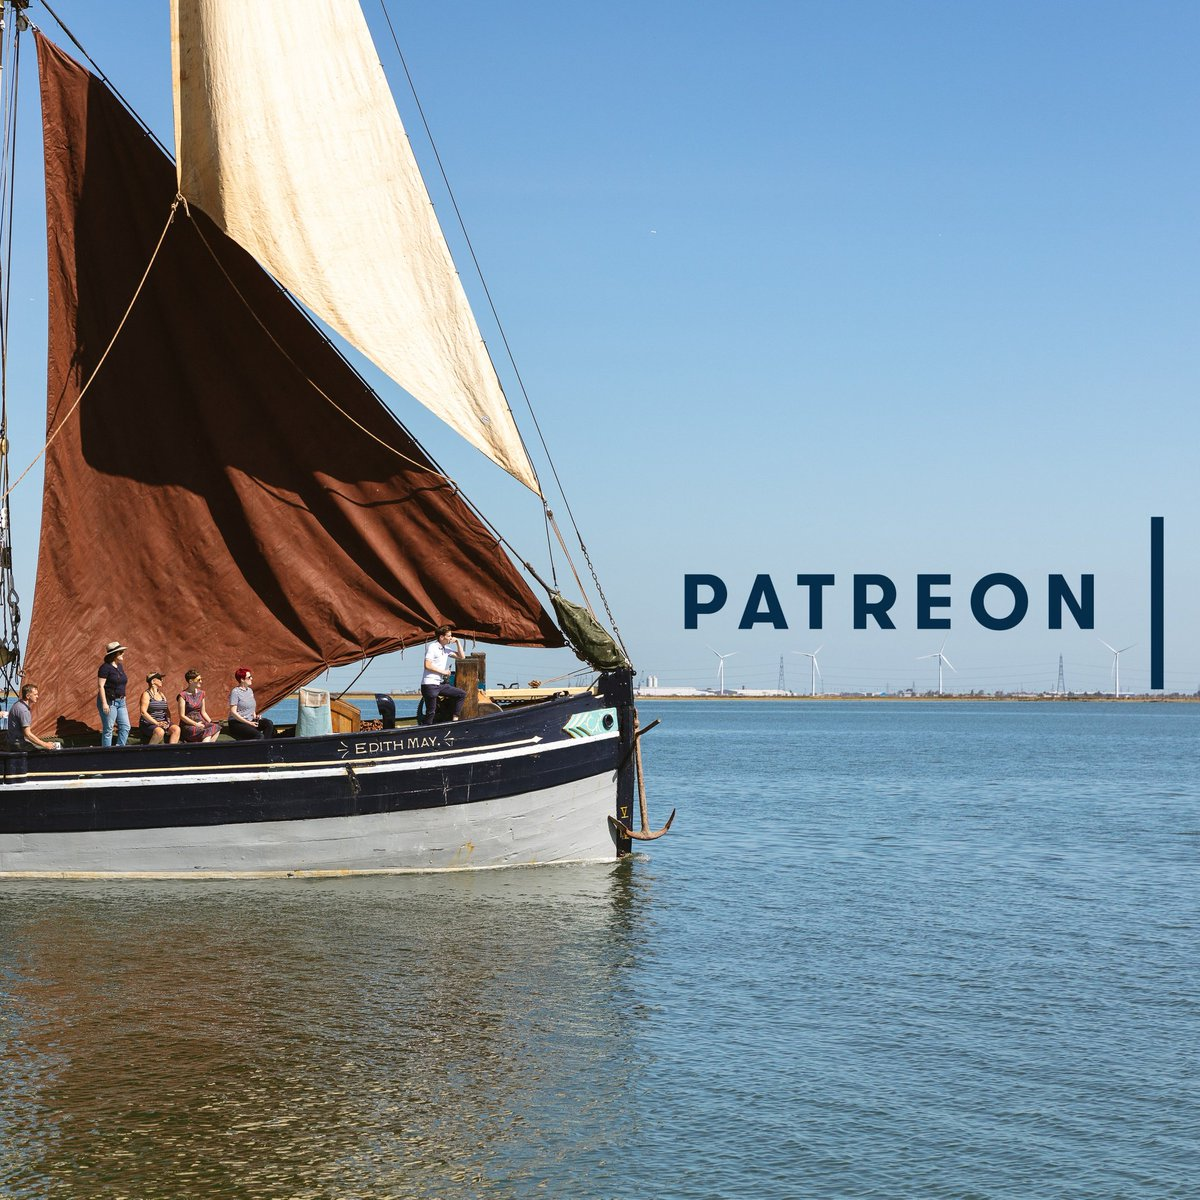 DING DING! The BIG news... No price tag. Free sailing trips. Today we are launching our own Patreon page. Take a look, watch the video, understand our ambition. Come sailing because it's great, subscribe because you want to. patreon.com/tillerandwheel